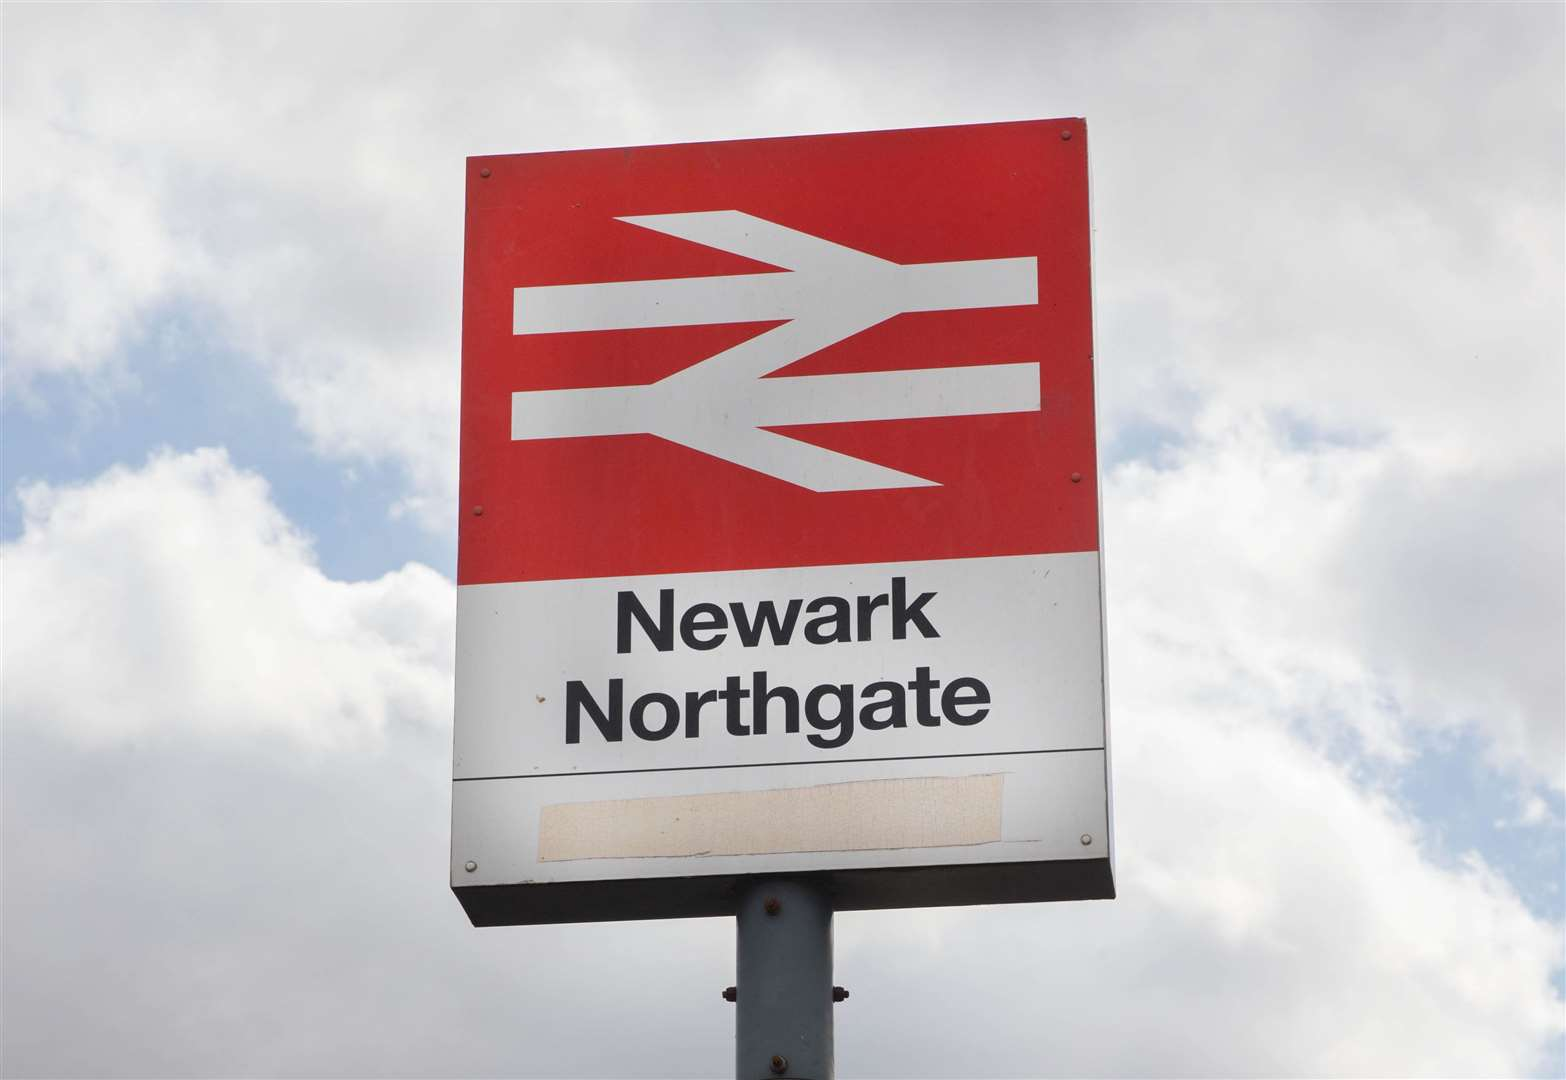 Calls made for investment in key strategic rail route, the East Coast Mainline